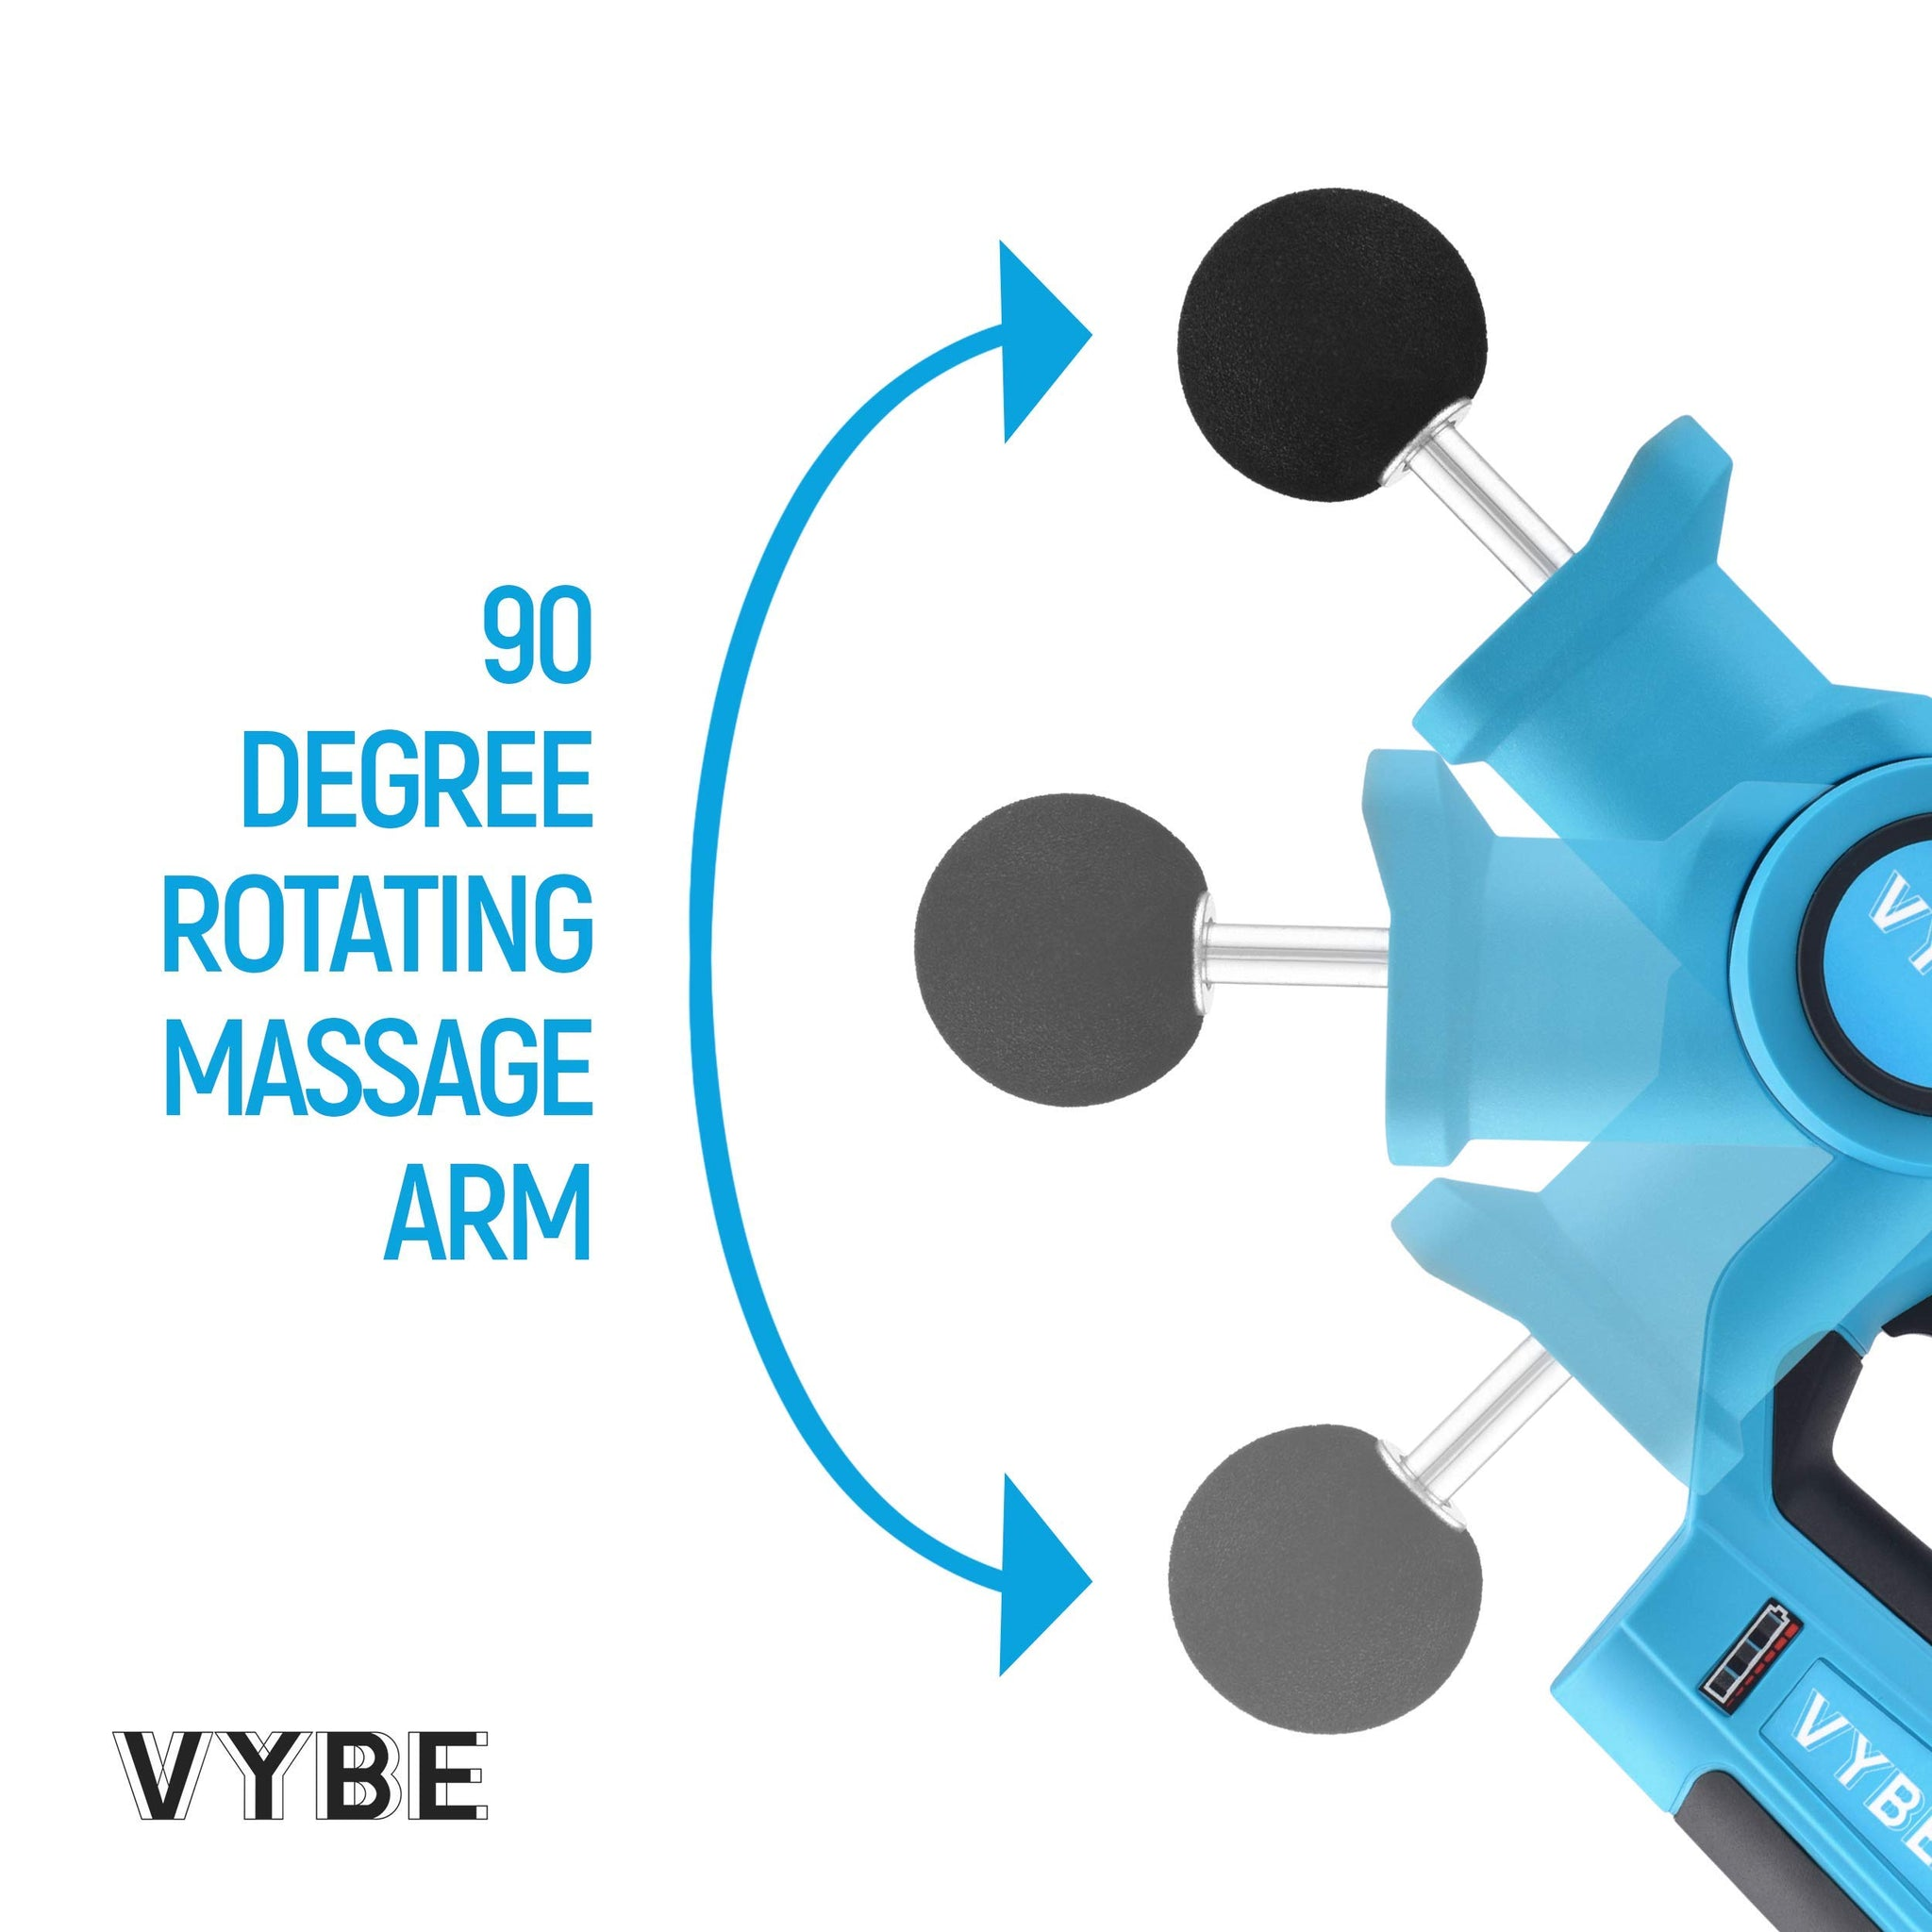 VYBE PERCUSSION Massage Gun -Handheld, Brushless, Cordless, Electric -